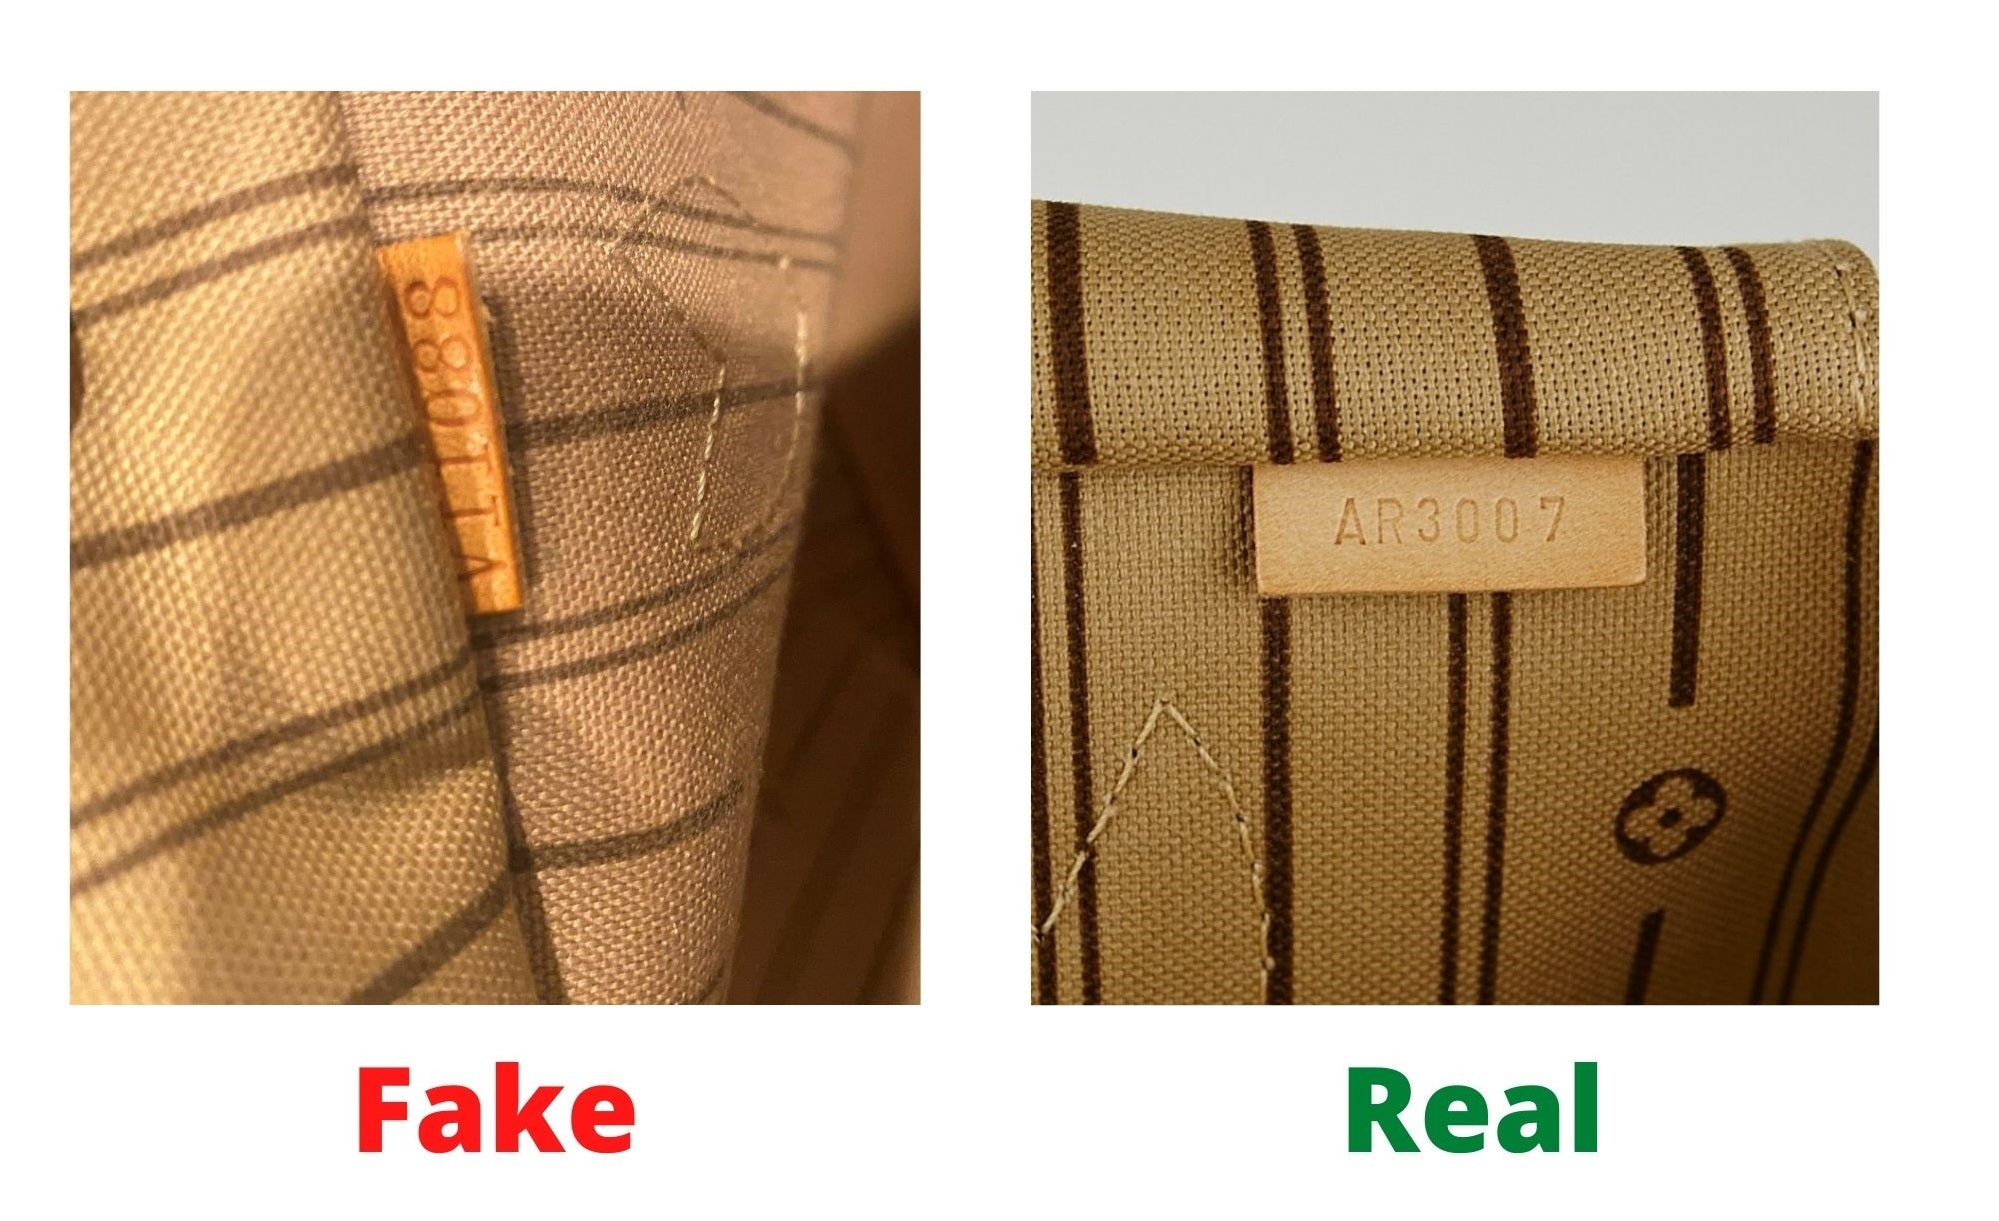 Fake Louis Vuitton Neverfull vs Real: Important Details You Should Definitely Pay Attention To (With Photo Examples) Neverfull Monogram real vs fake date code